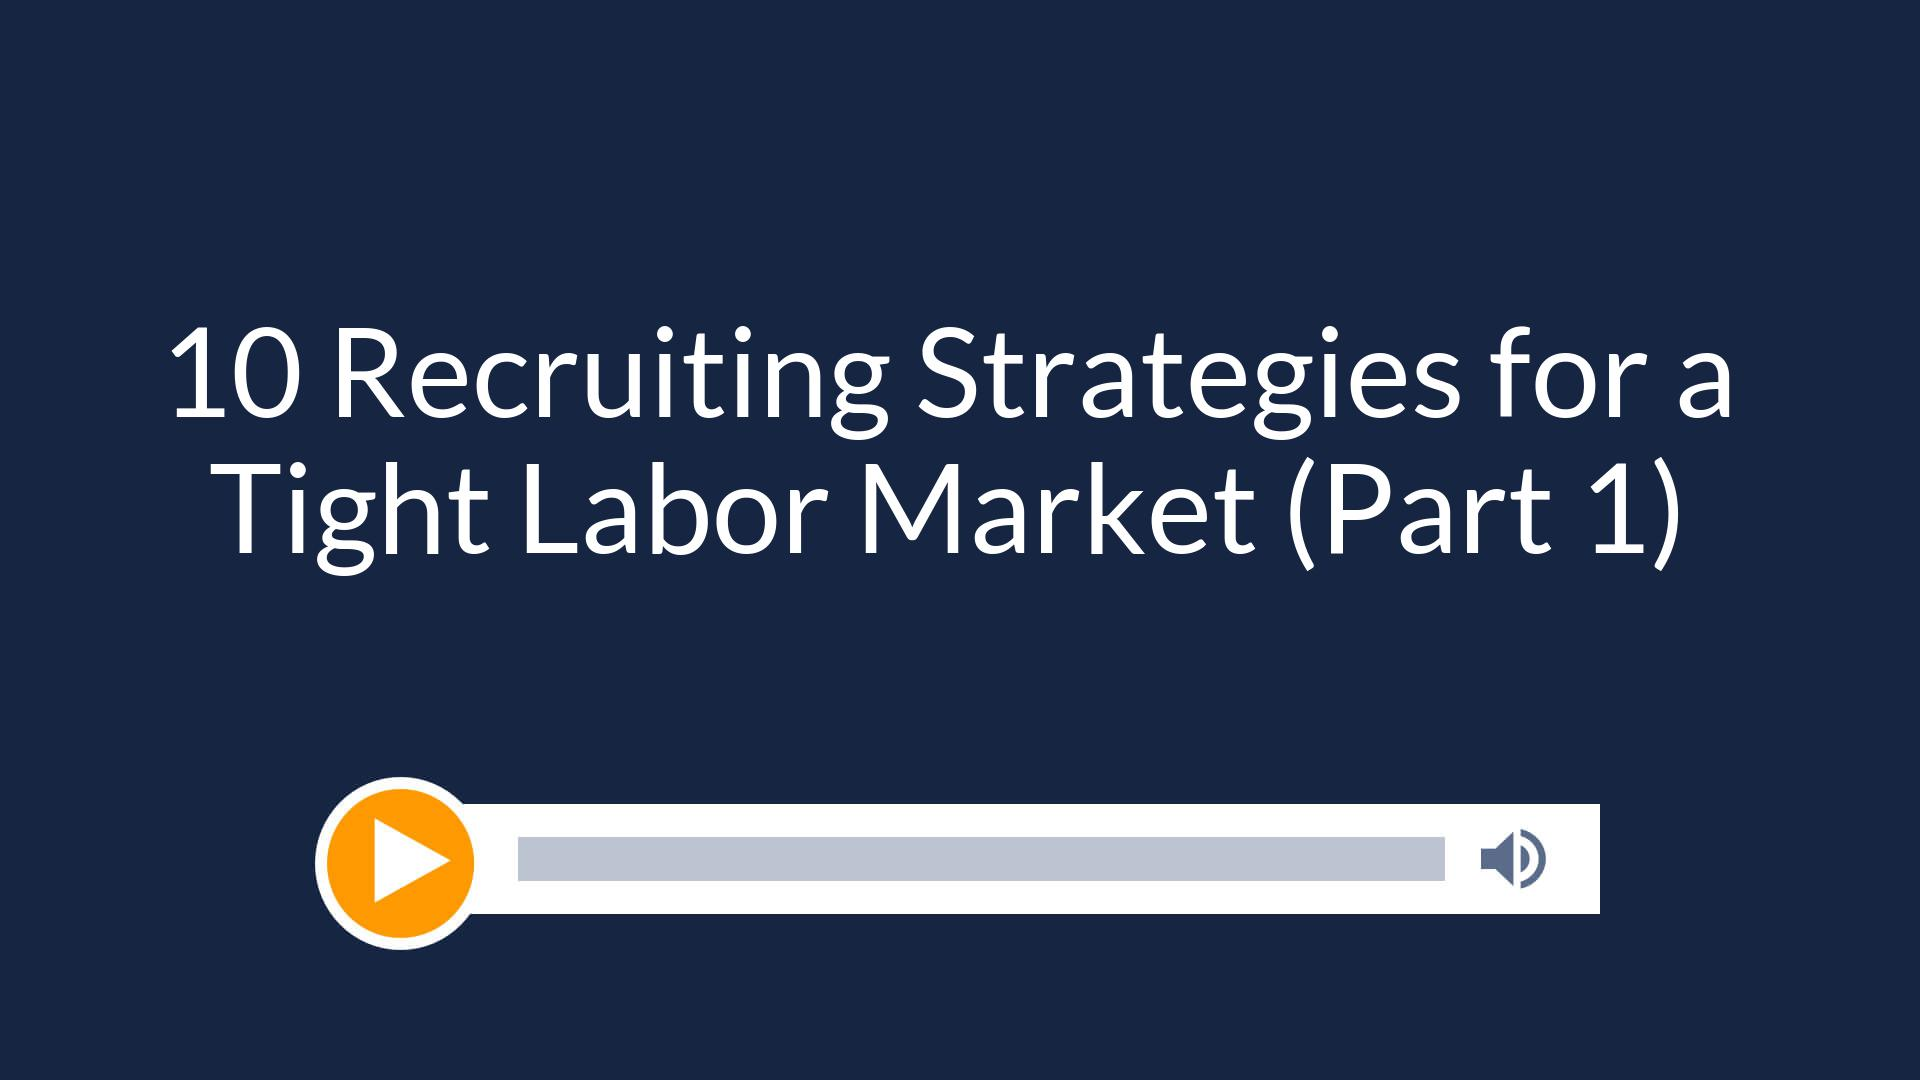 10 Recruiting Strategies for a Tight Labor Market (Part 1)